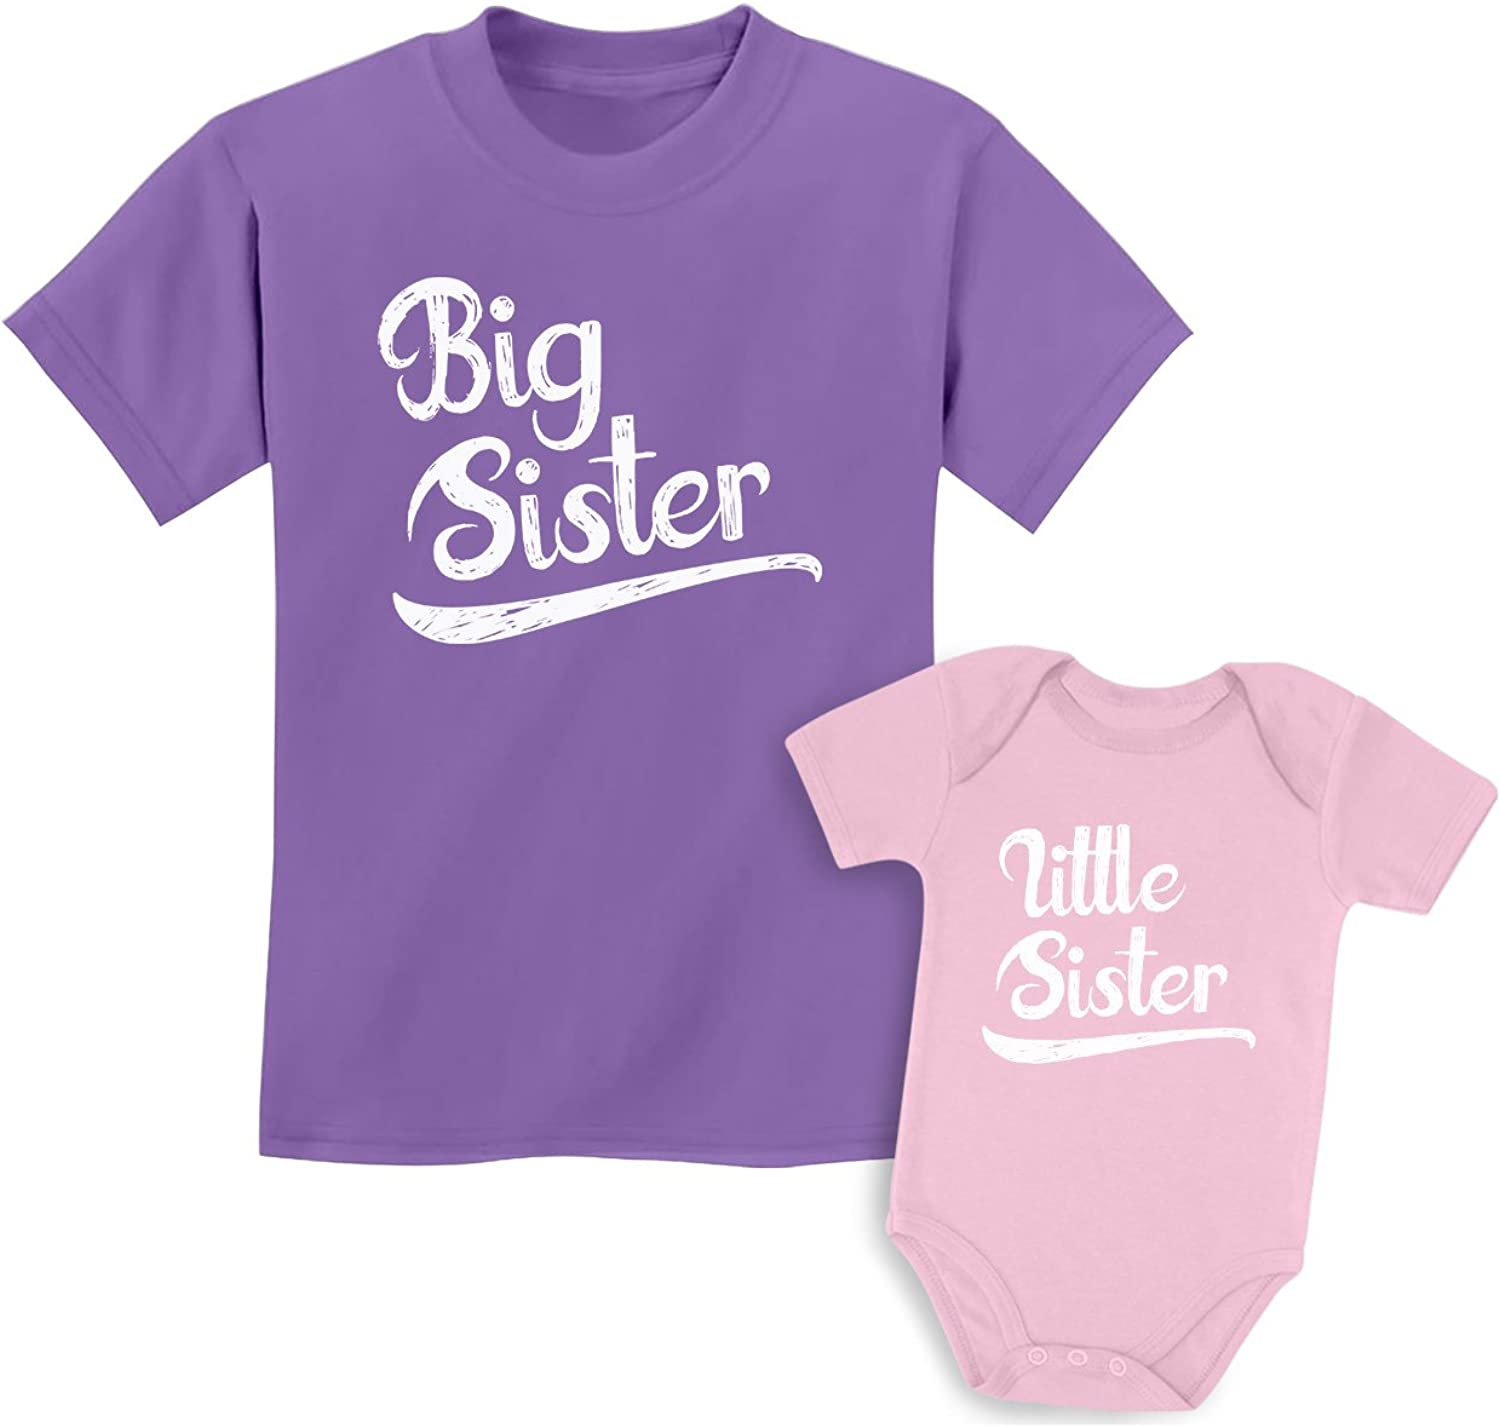 Little Sister T-Shirt Arrow Heart Kids Baby Grow Sisters Outfits Set Matching Big Sister